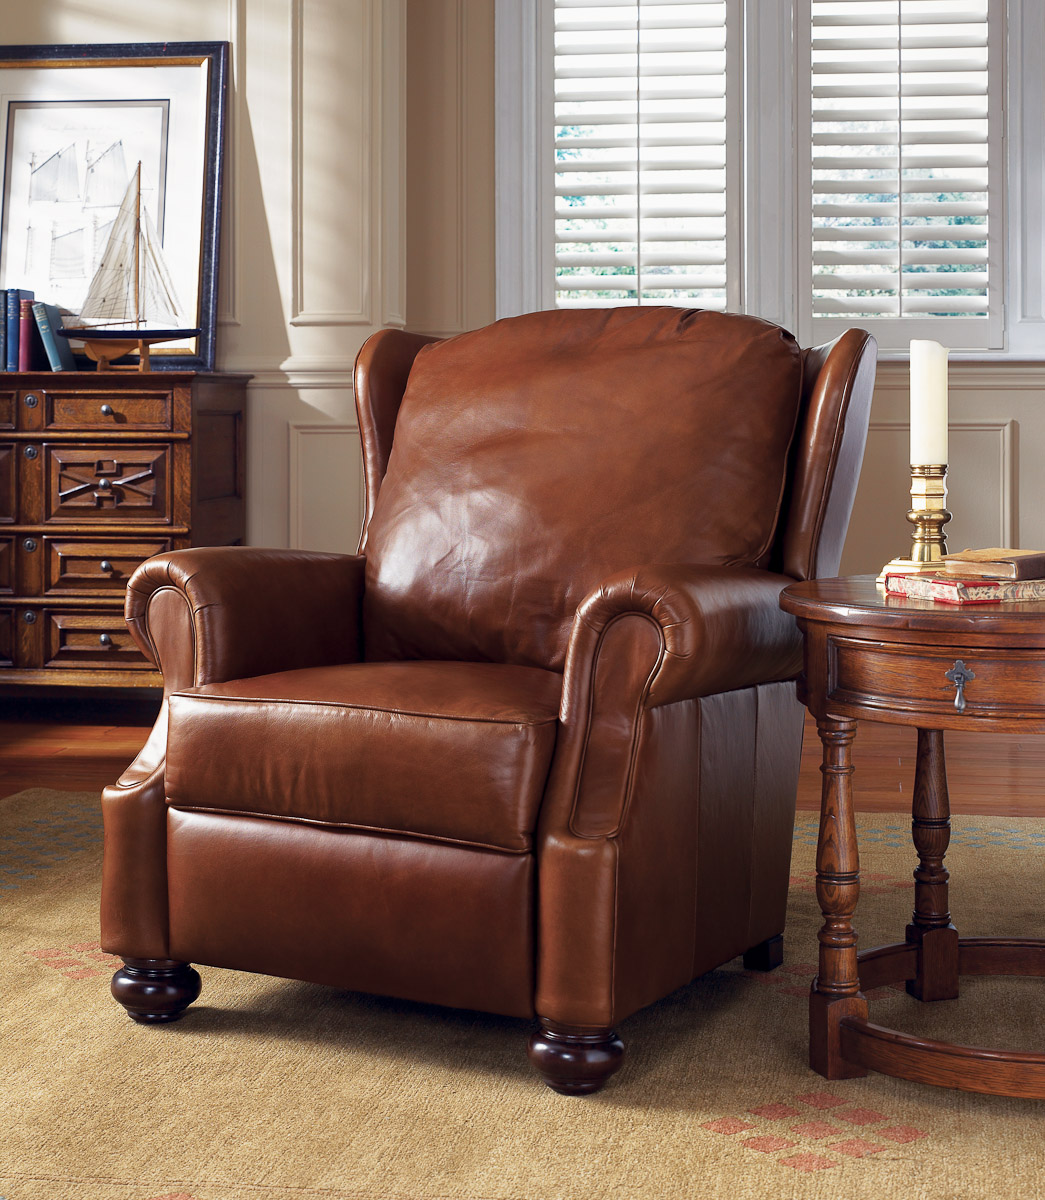 leather living room furniture clearance living room leather furniture 16652 | Stickley Grisham